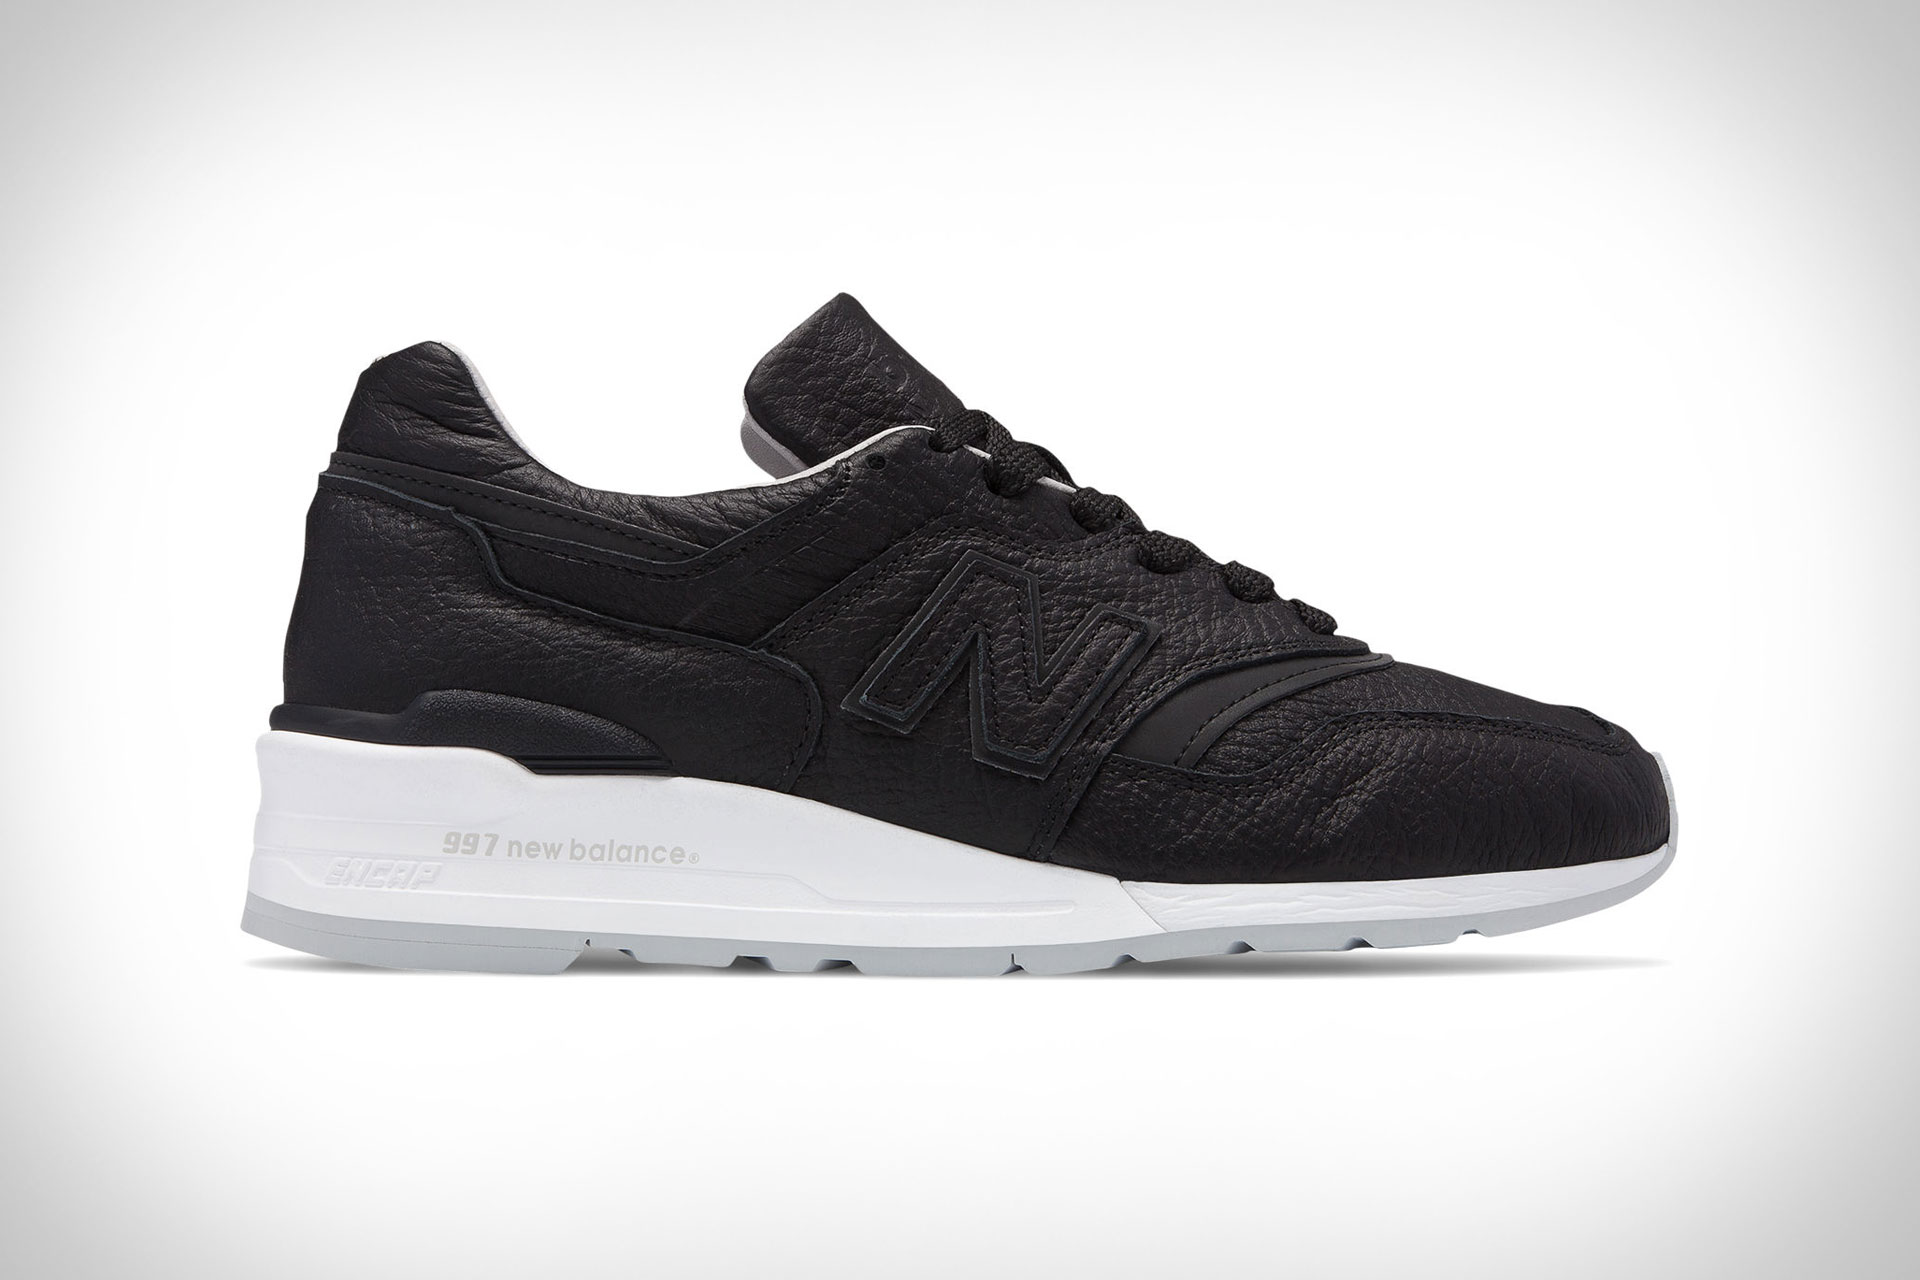 new style 39d16 812a4 New Balance 997 Bison Made in USA Sneaker